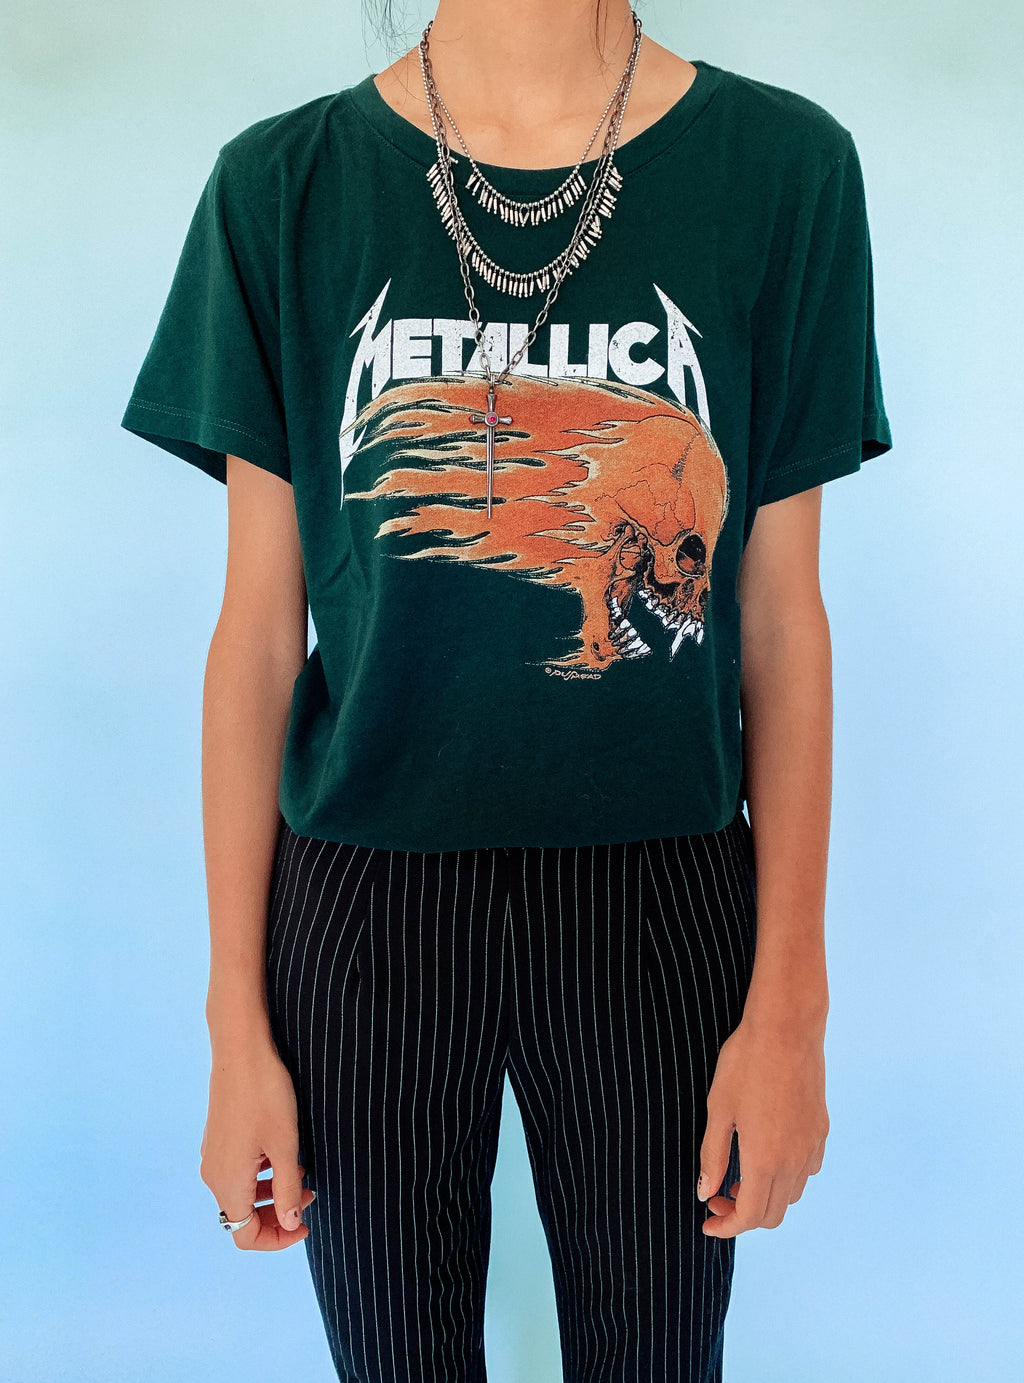 Metallica Flaming Skull Boyfriend Tee